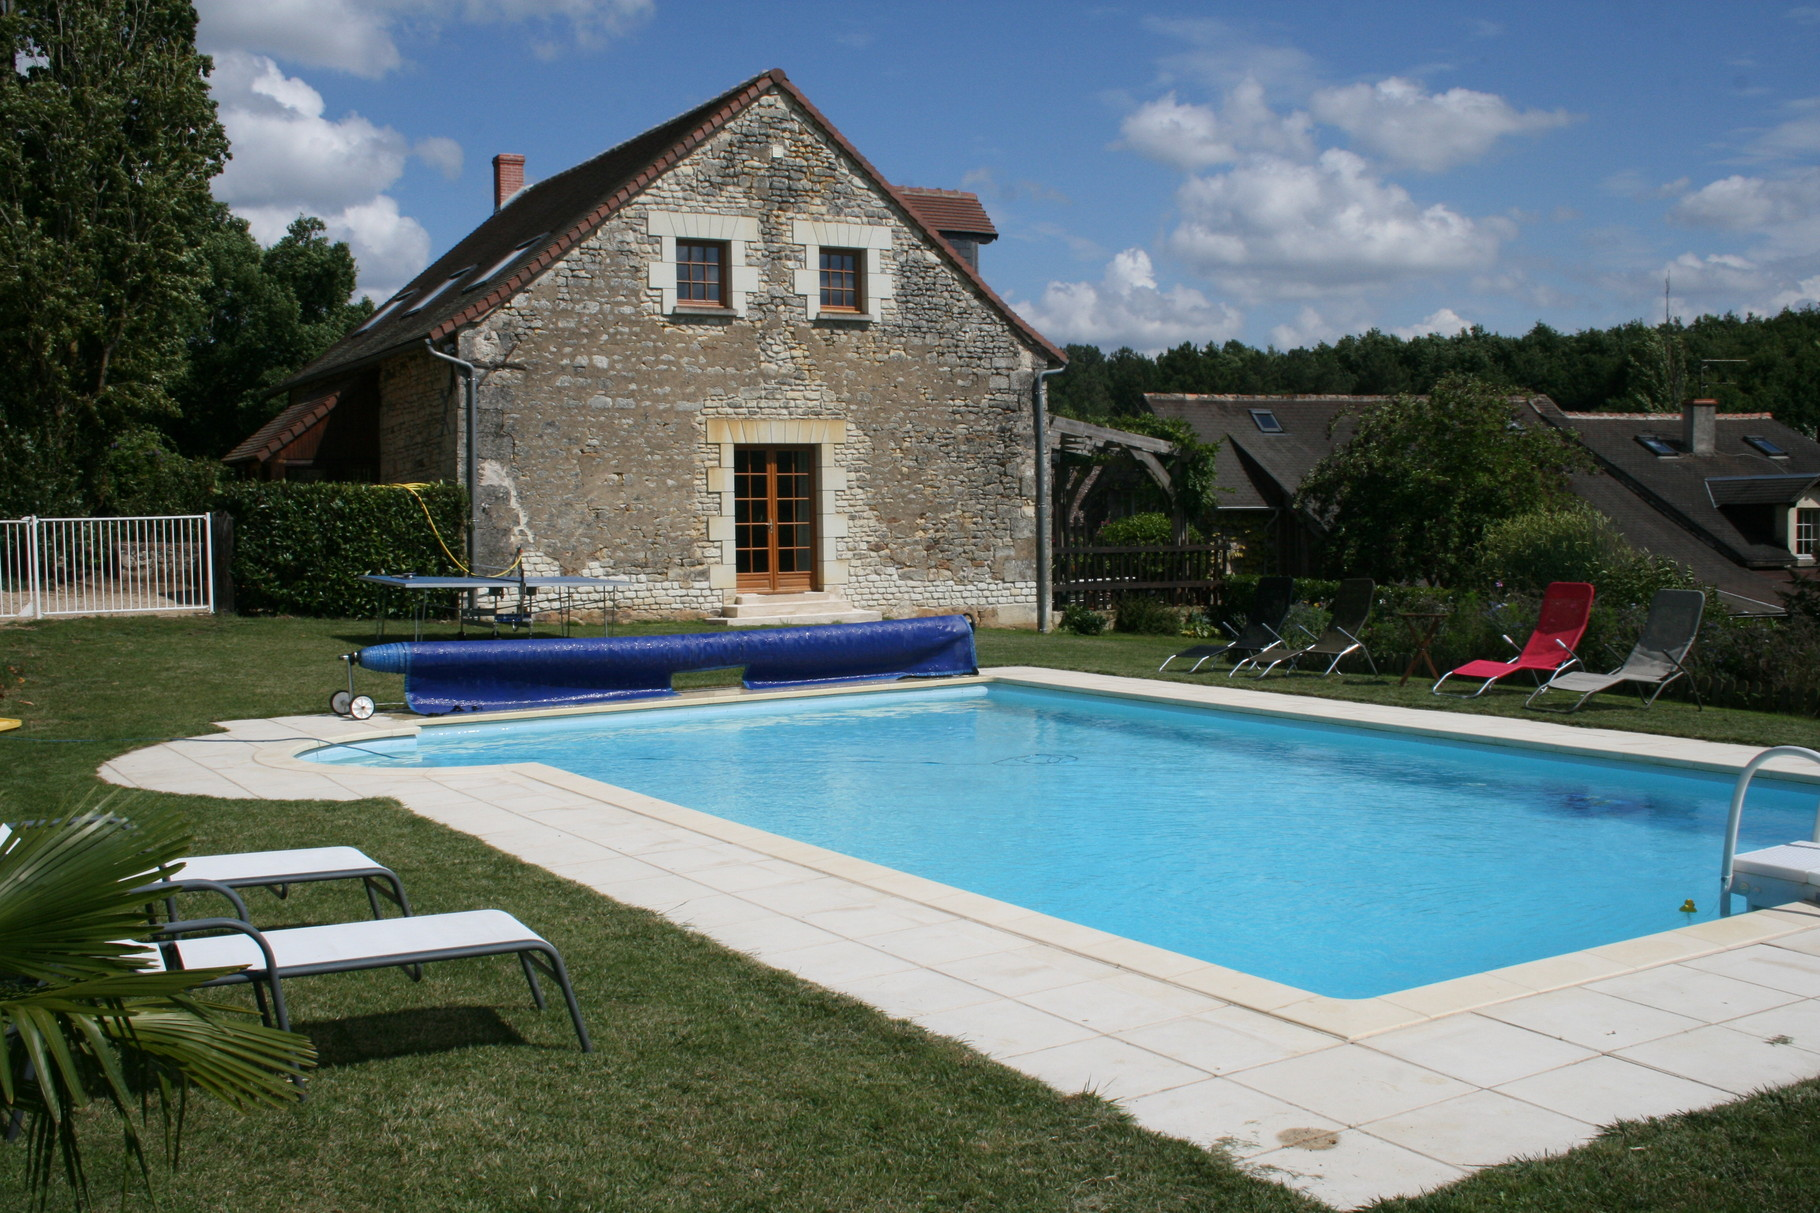 Gîte poolside view